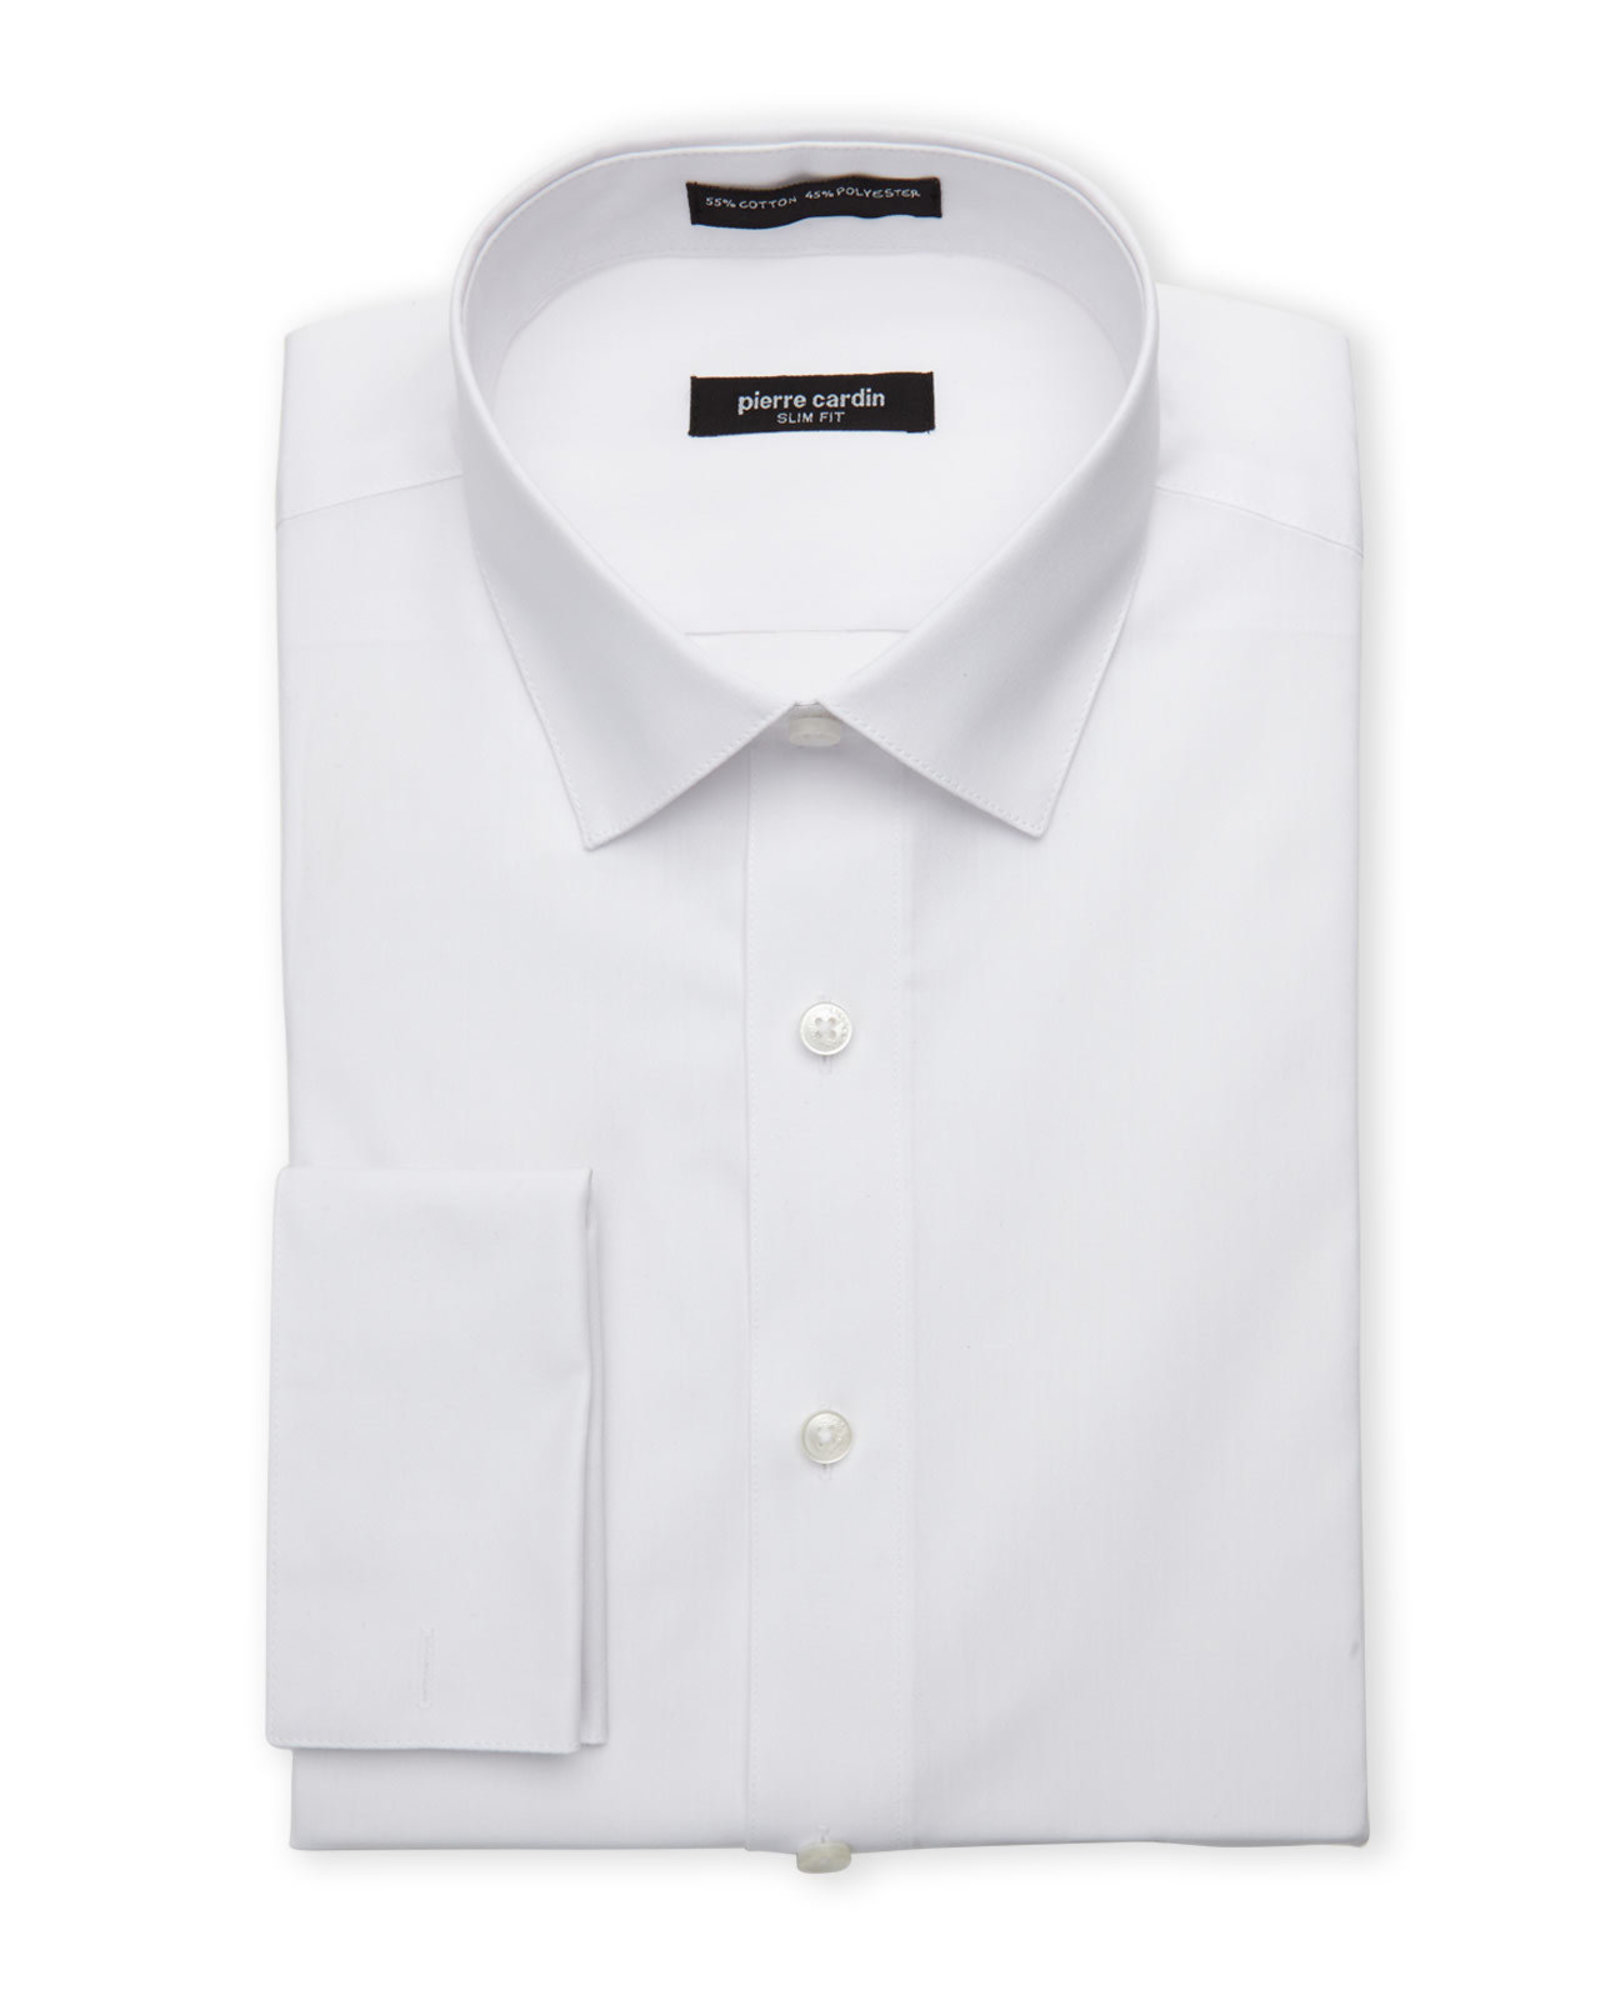 pierre cardin white slim fit french cuff dress shirt in